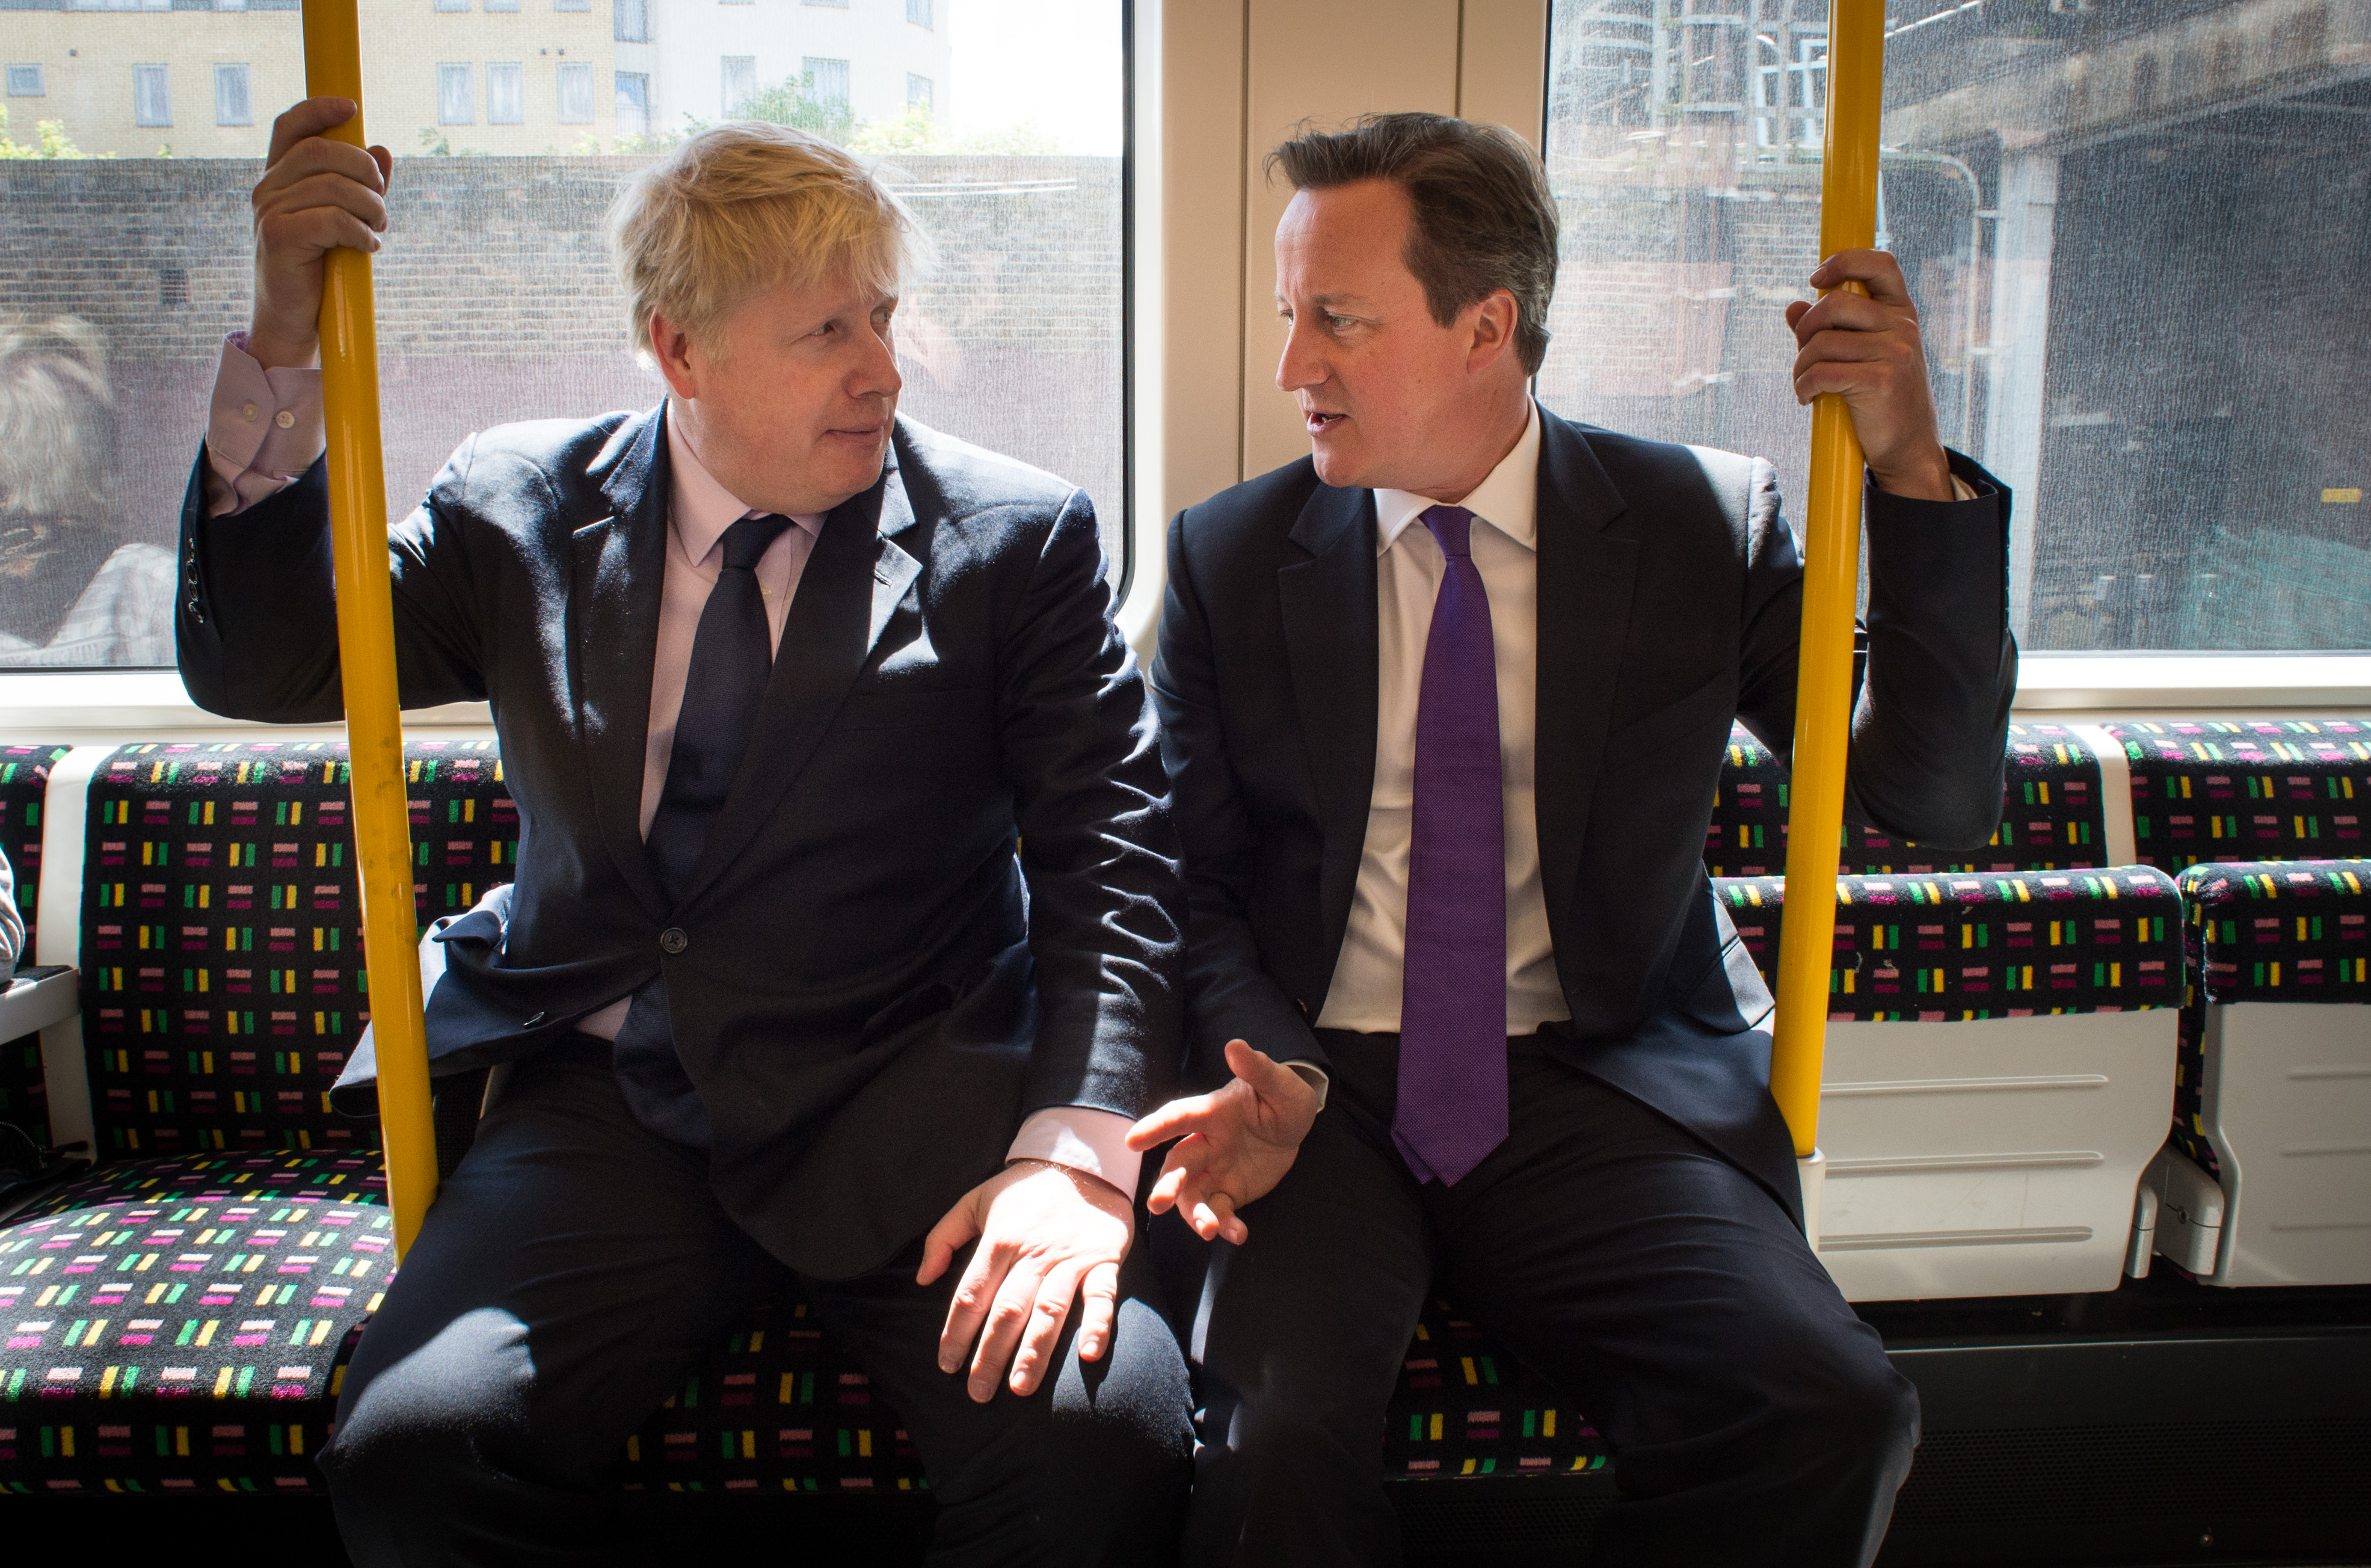 David Cameron Takes To The Campaign Trail